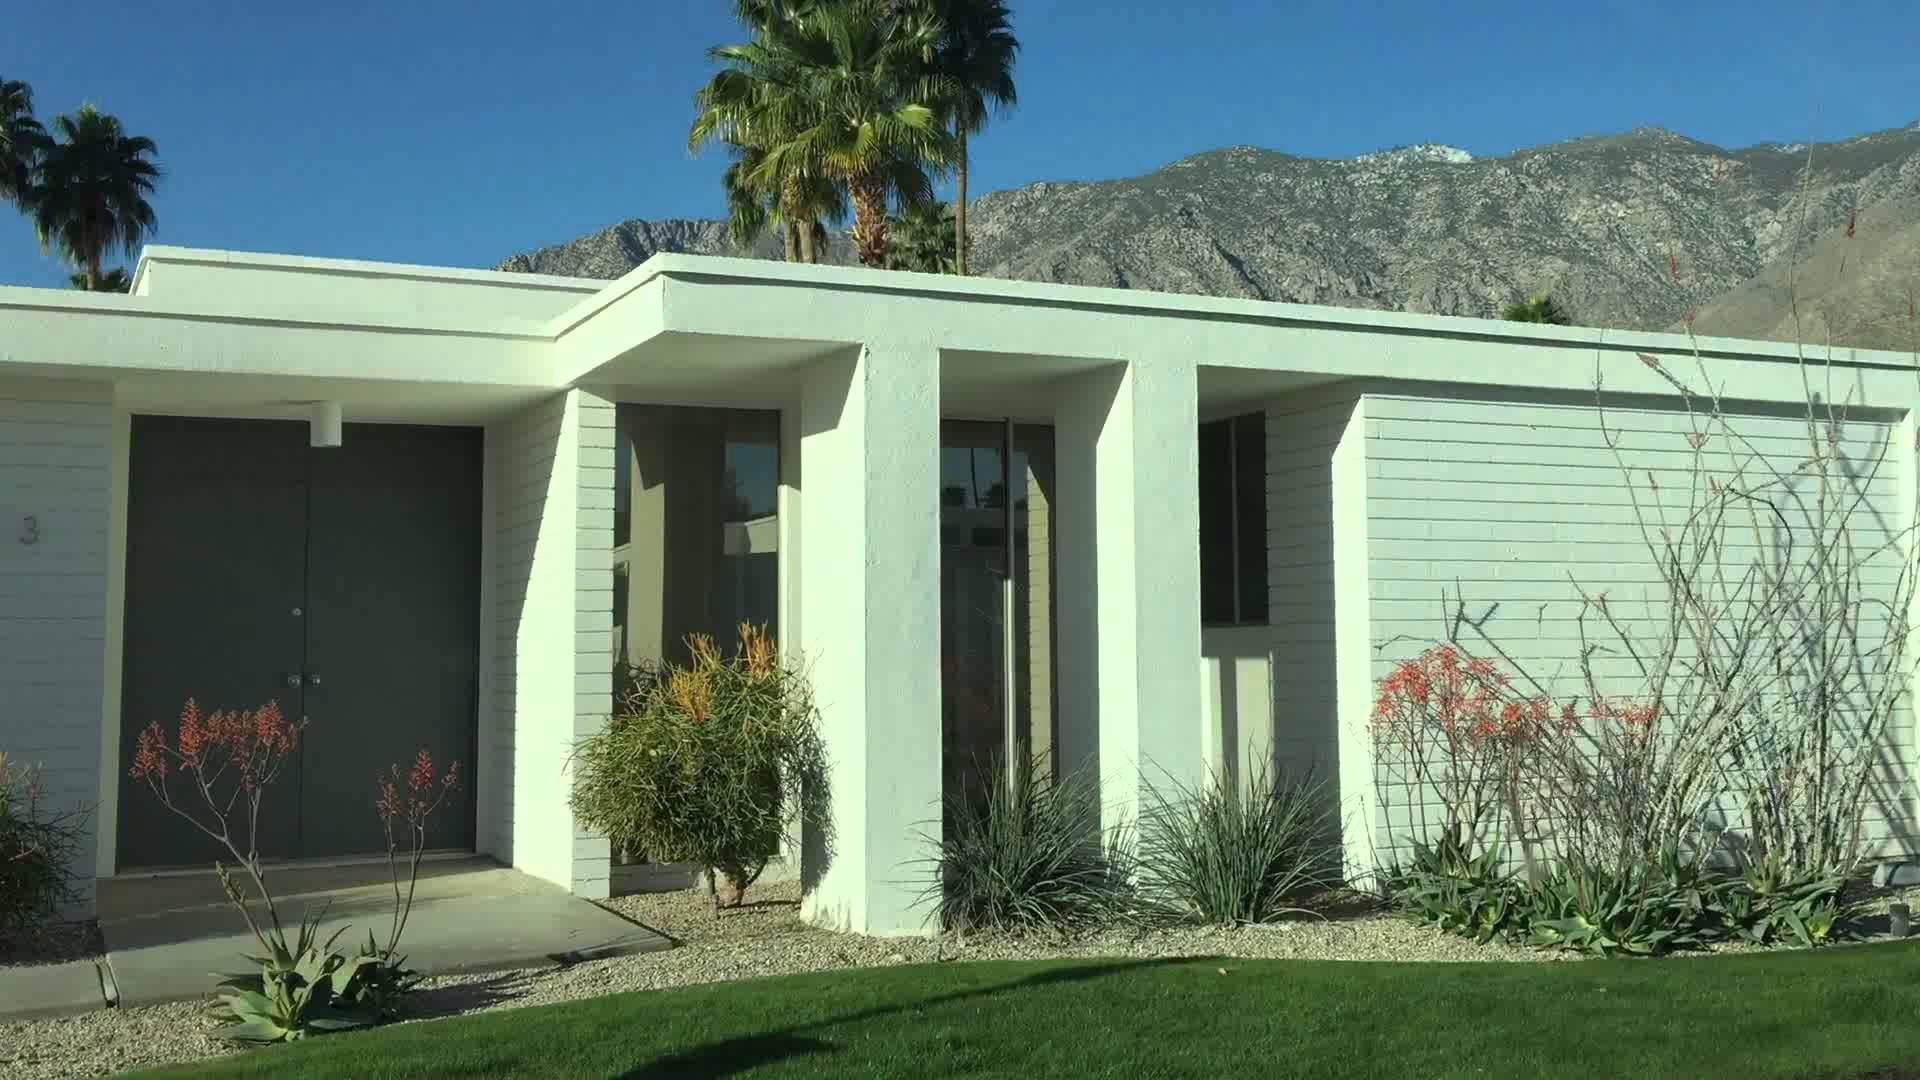 Kings Point Palm Springs Midcentury Modern Golf Course Homes For